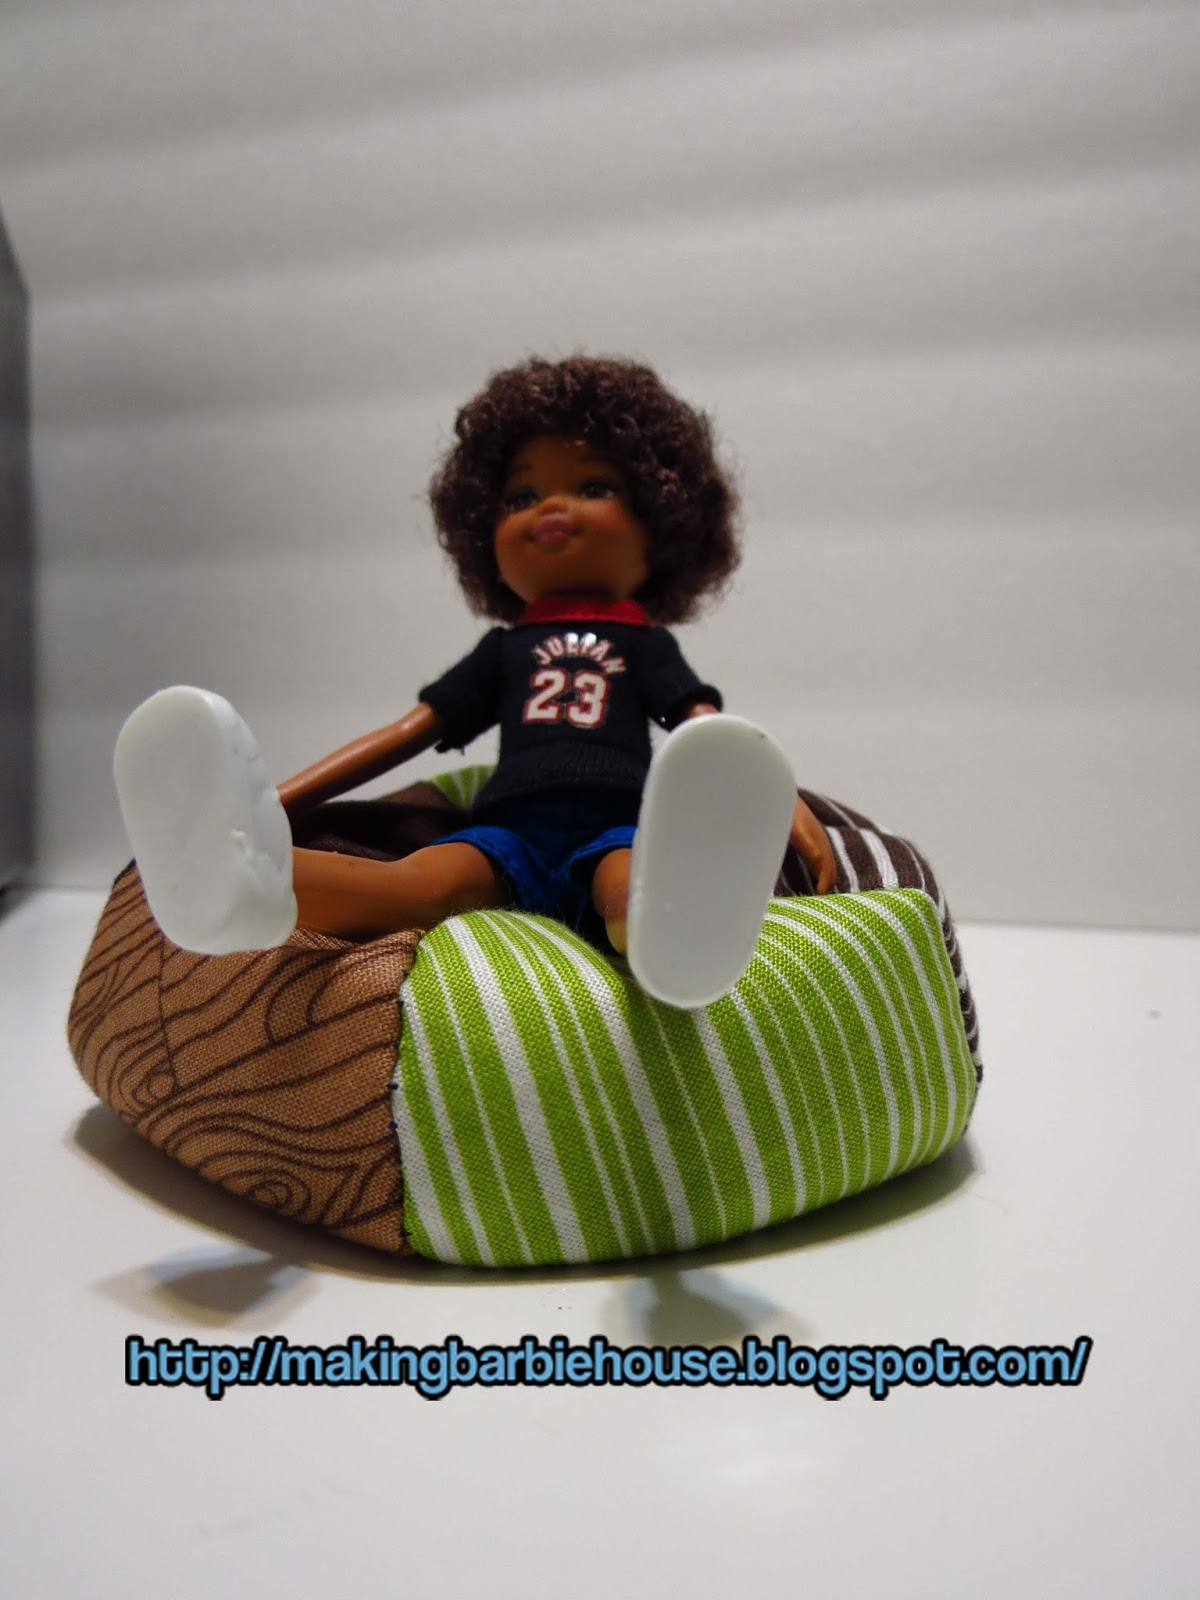 How To Sew Bean Bag Chair Hunting Seats And Chairs Making A Modern Barbie House